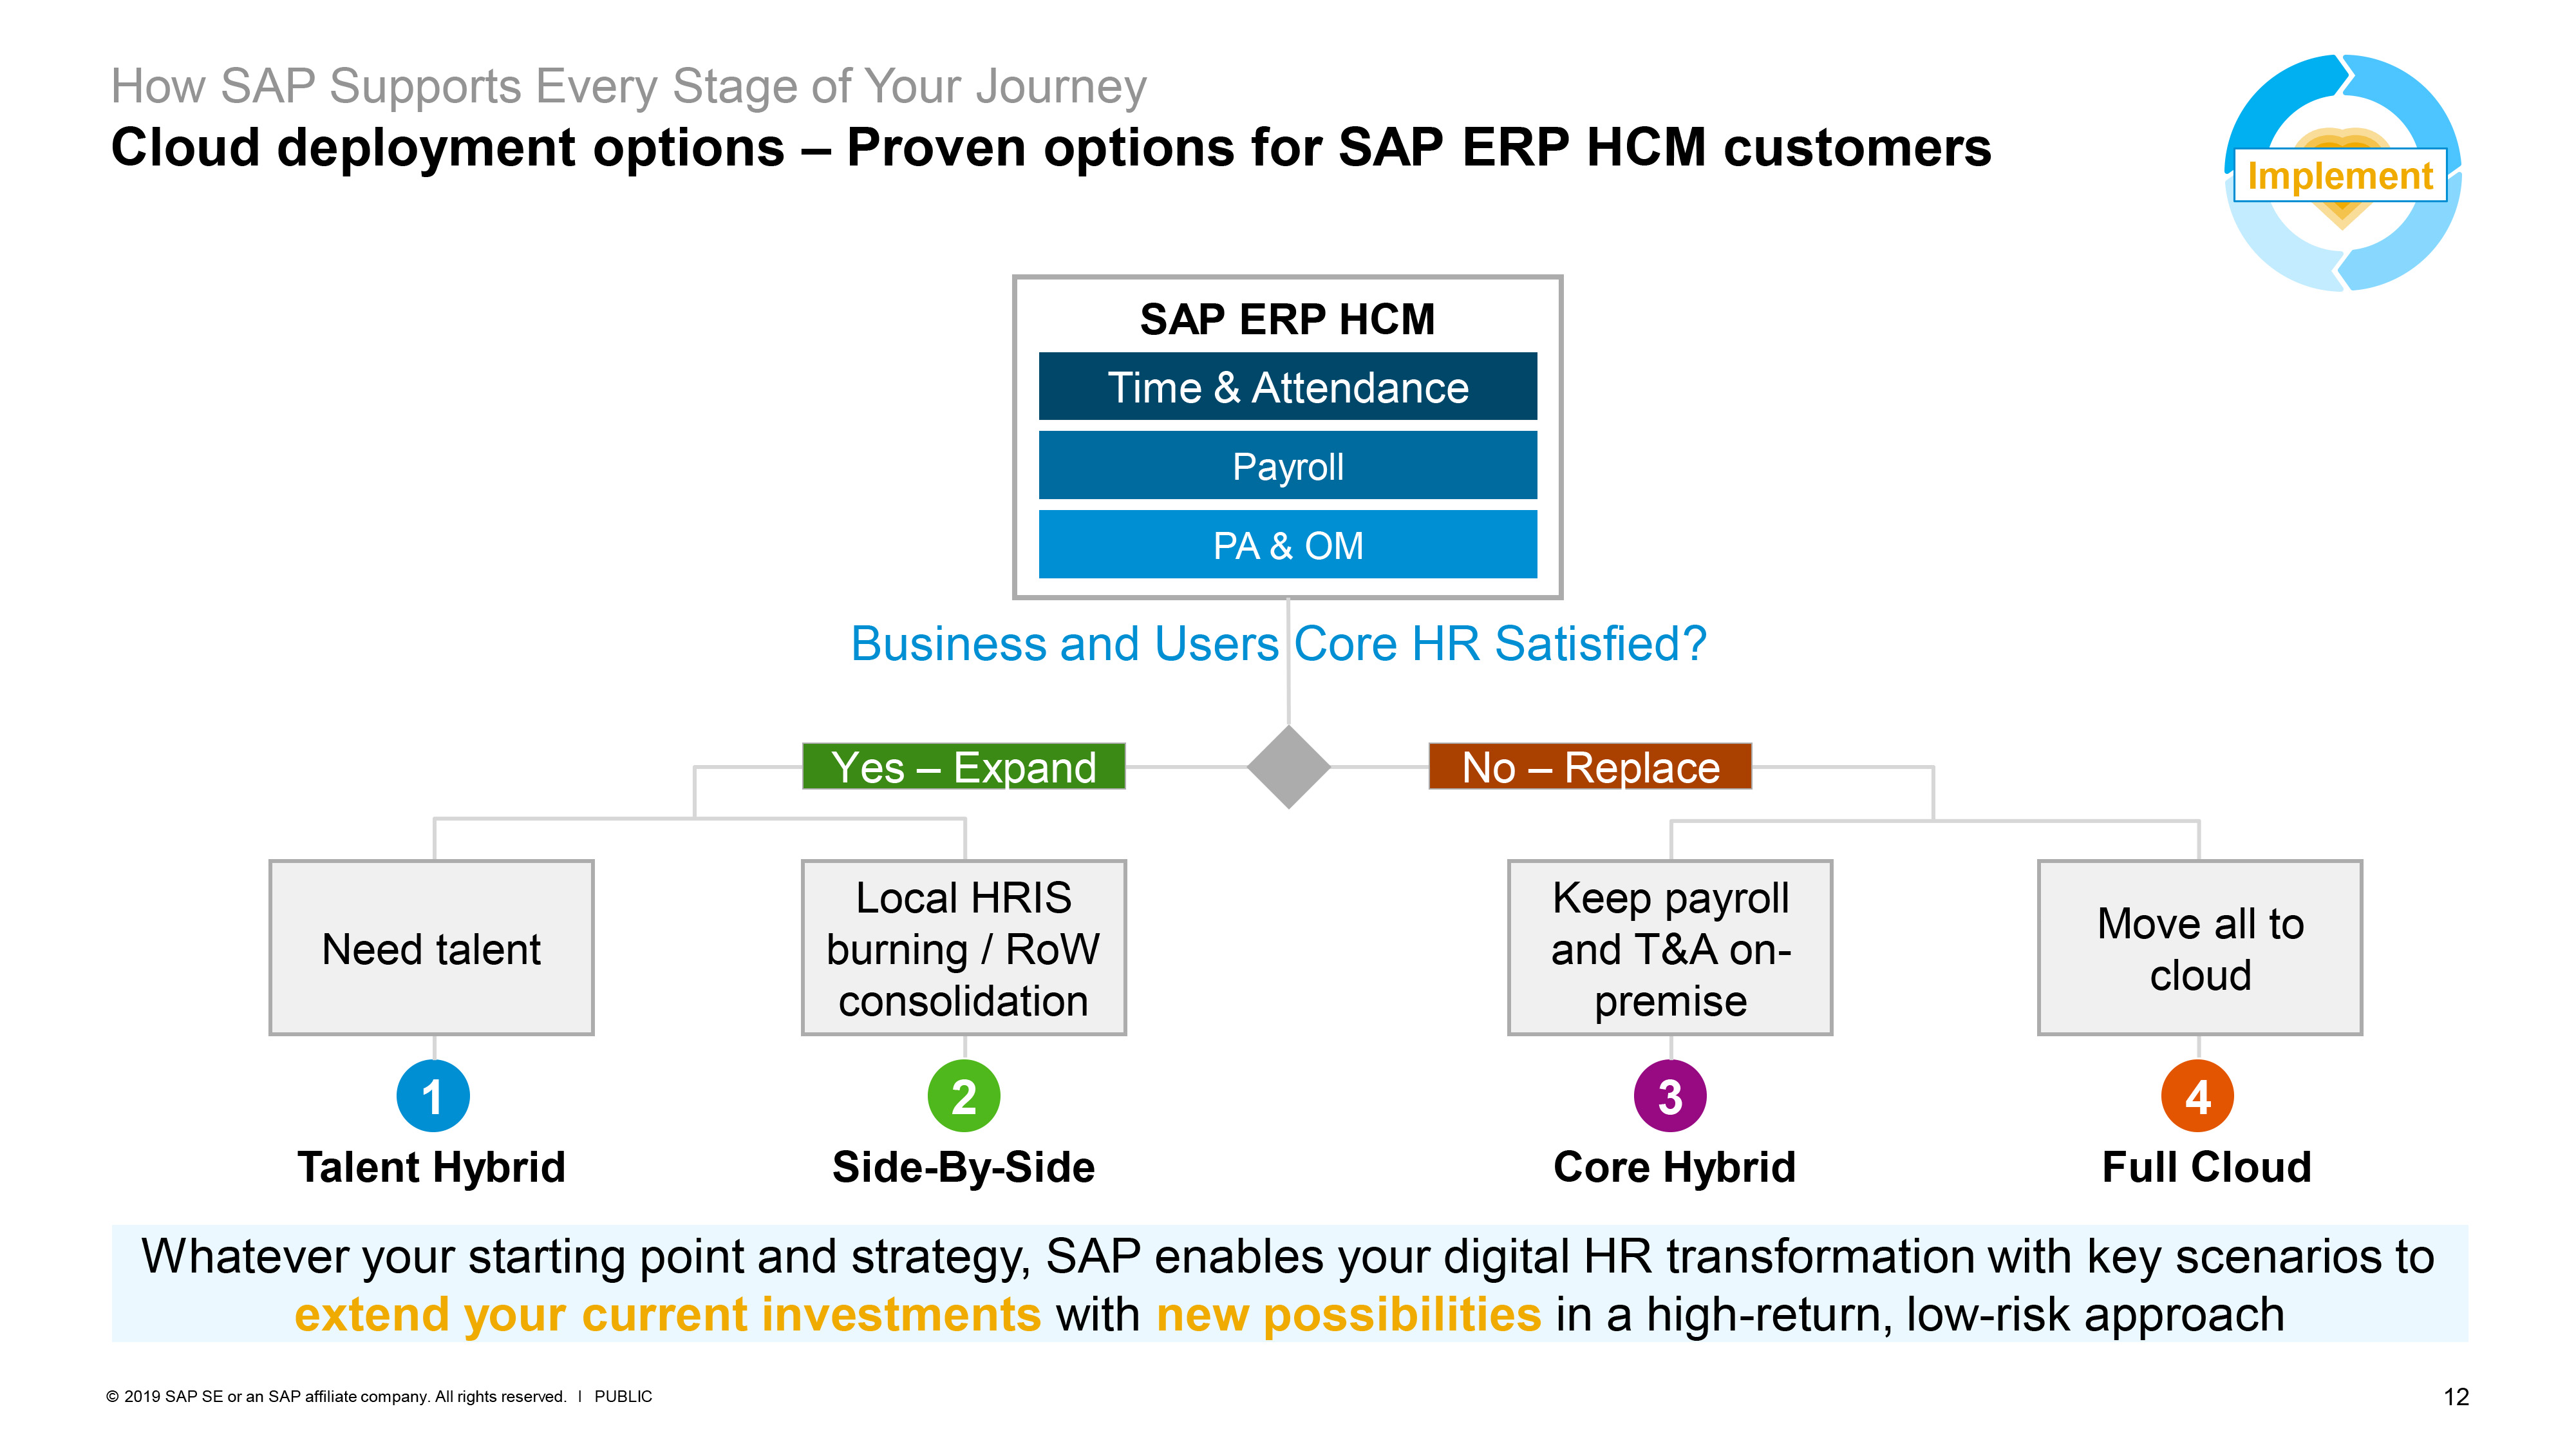 Cloud deployment options – Proven options for SAP ERP HCM customers